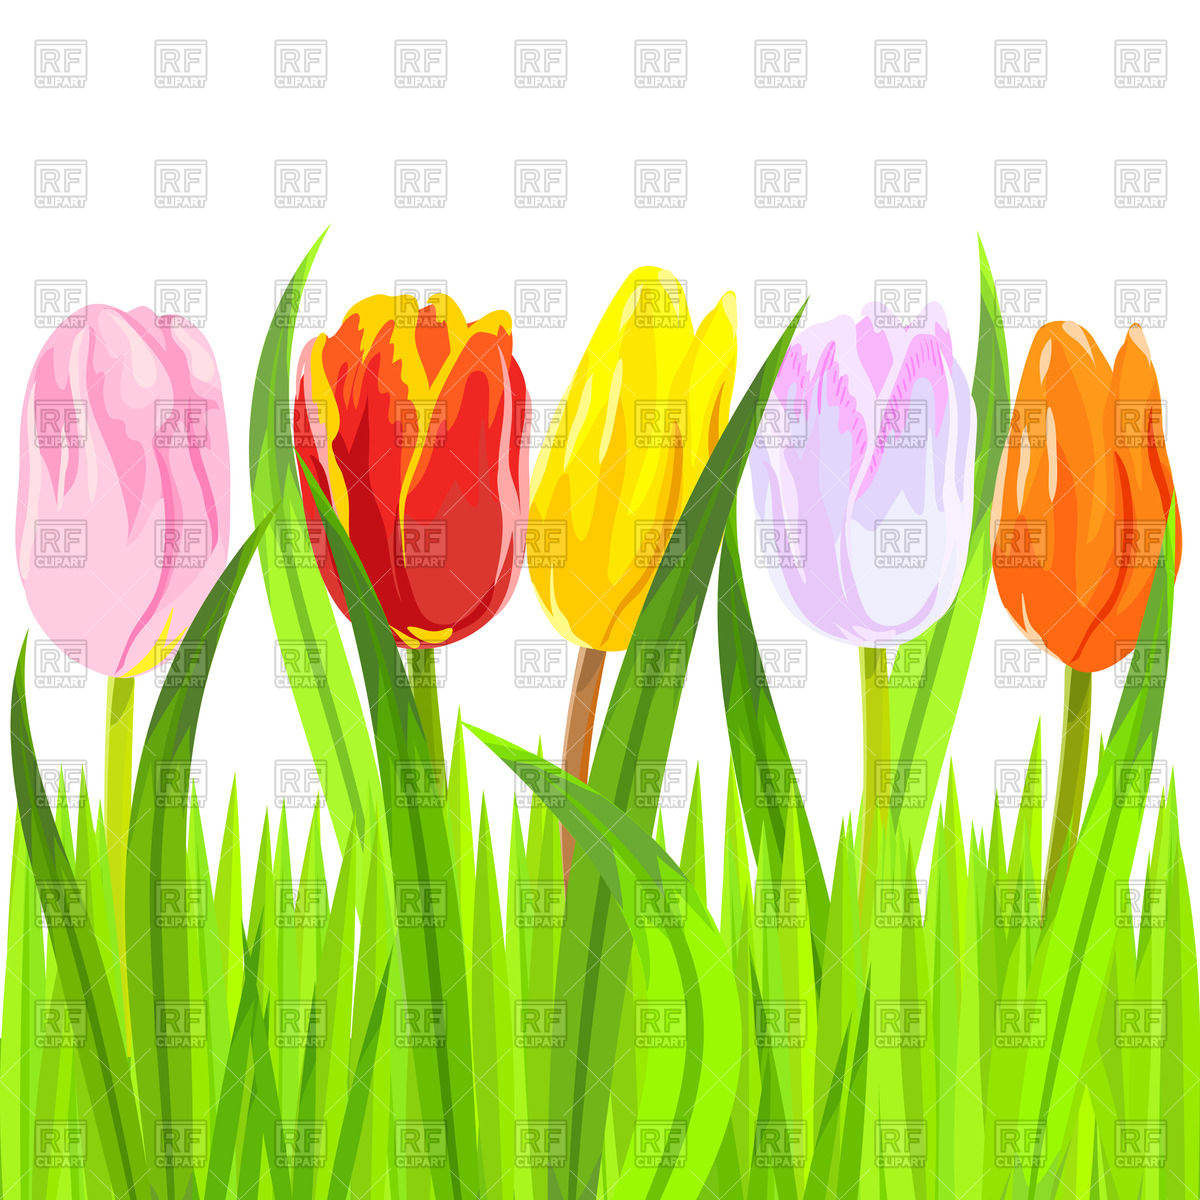 Colorful tulips in a light green grass Vector Image #45096.